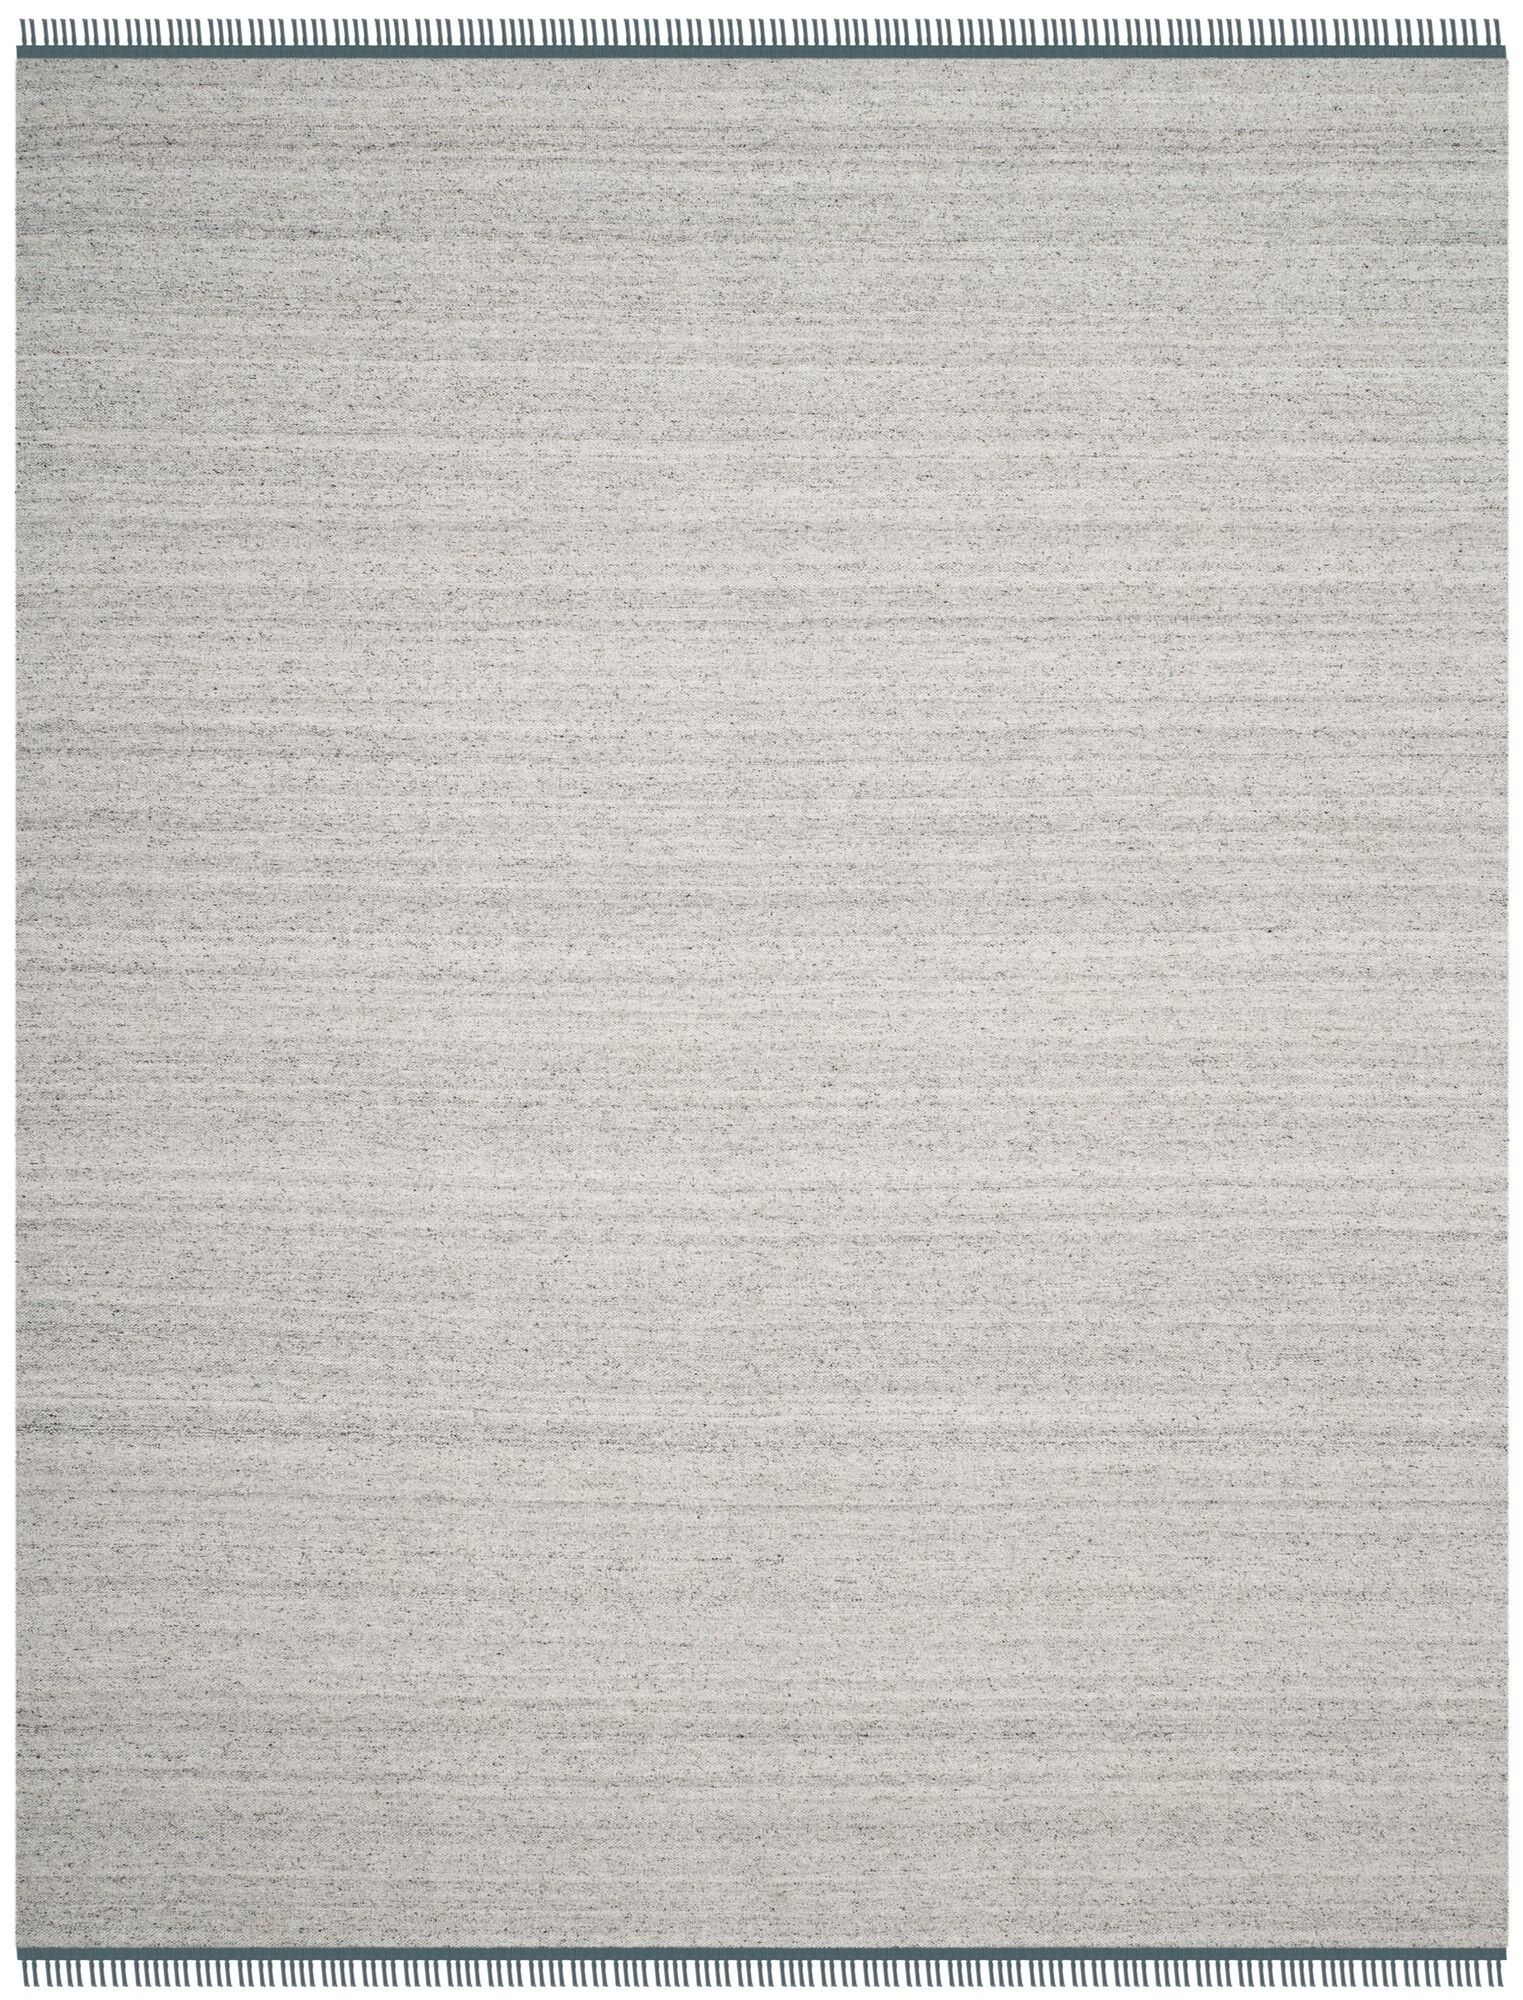 Sojourn Hand-Woven Gray/Blue Area Rug Rug Size: Rectangle 8' x 10'